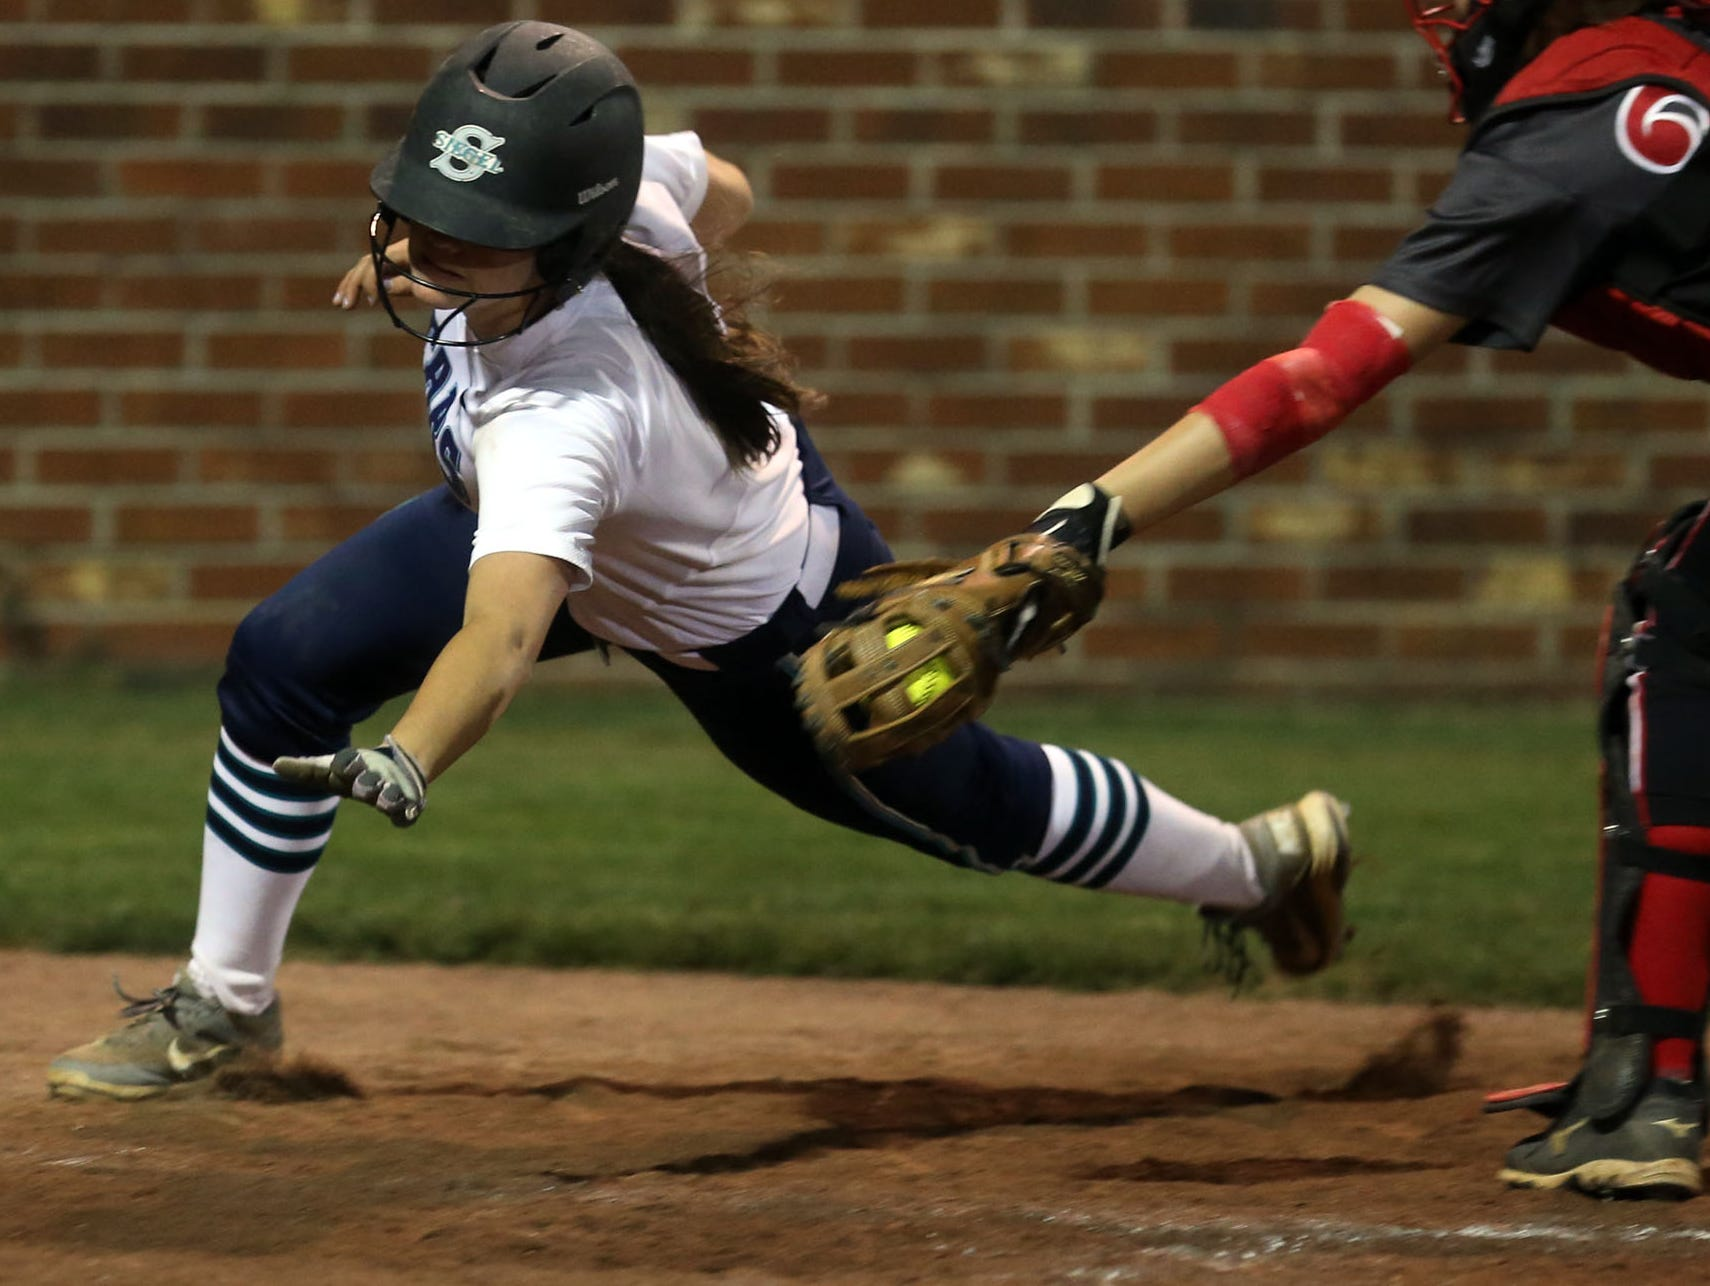 Siegel's Rebekah Juergens tries to score around Coffee County catcher Tori Bell in the 11th inning Wednesday at Coffee County. Juergens was called out on the play.